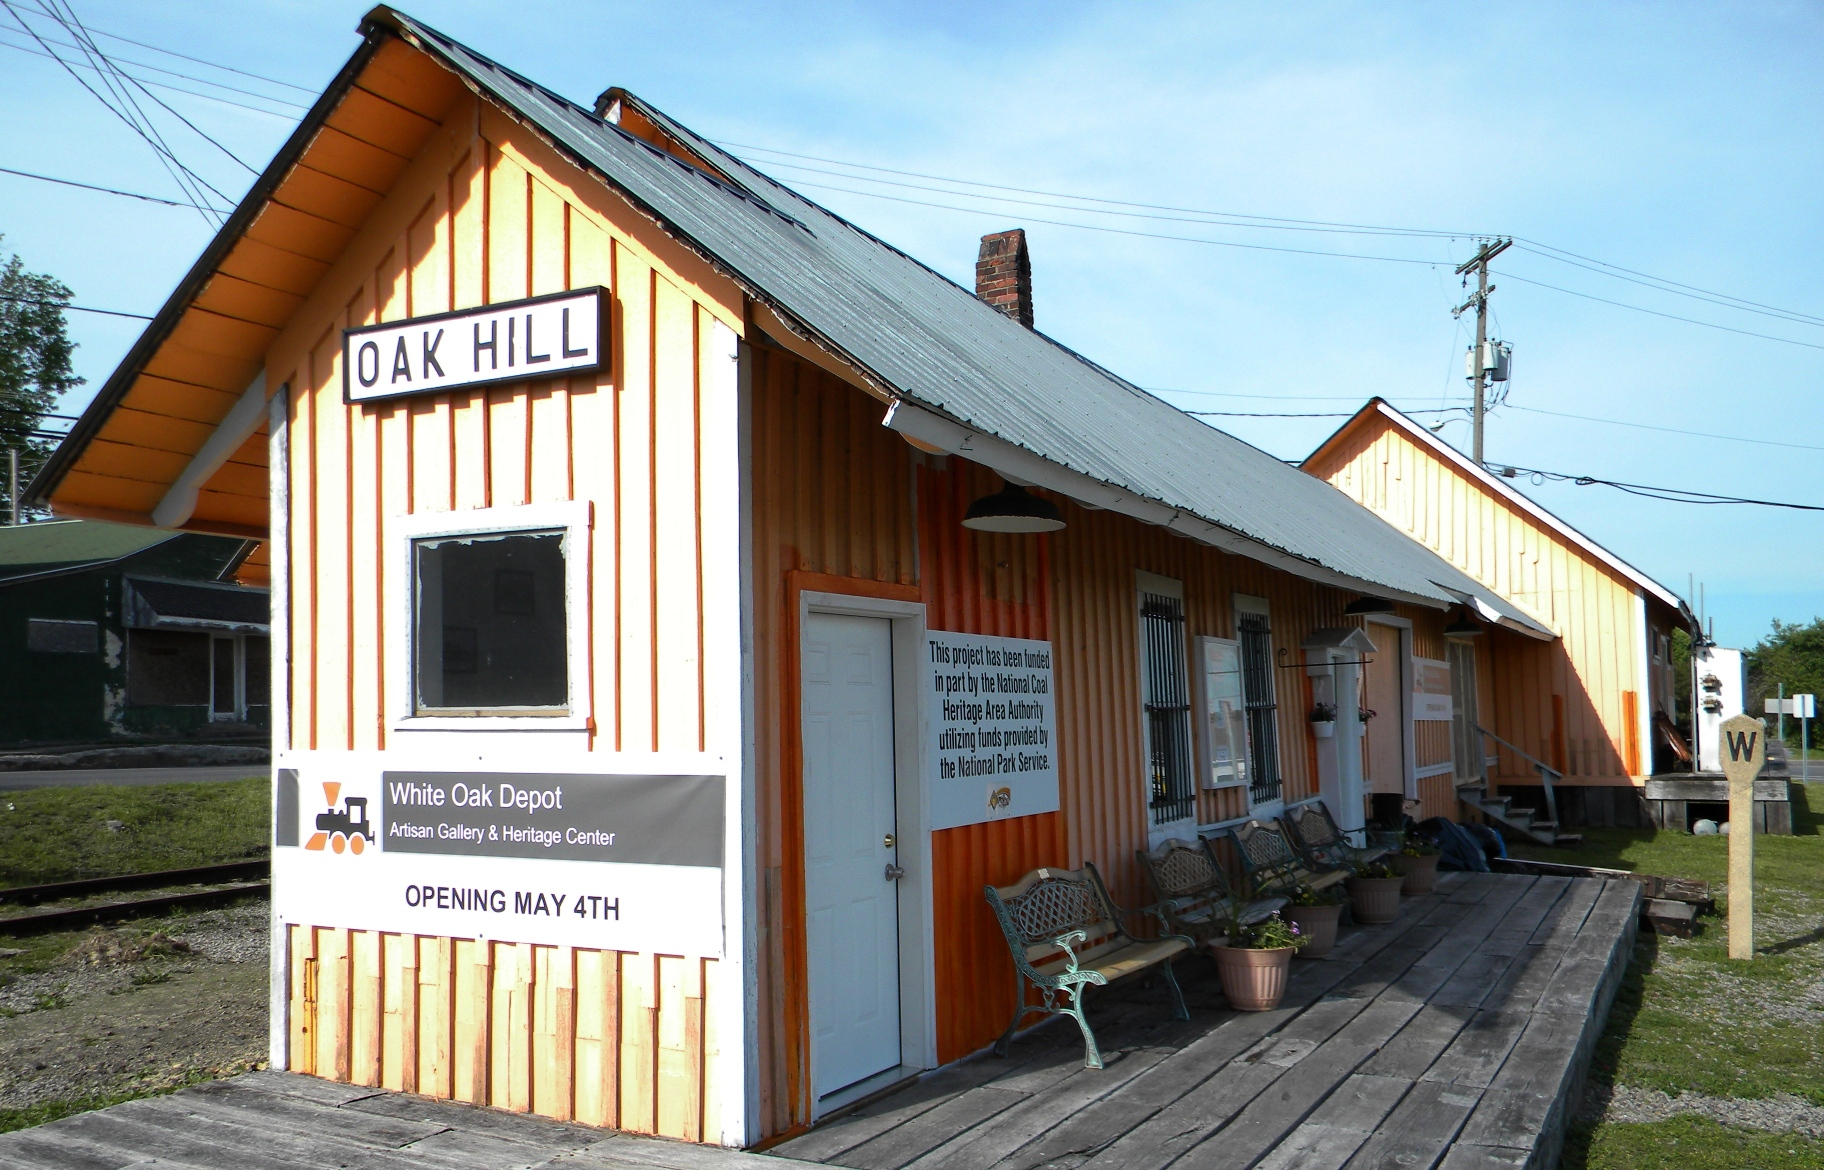 Oak Hill Railroad Depot in the 2000s.